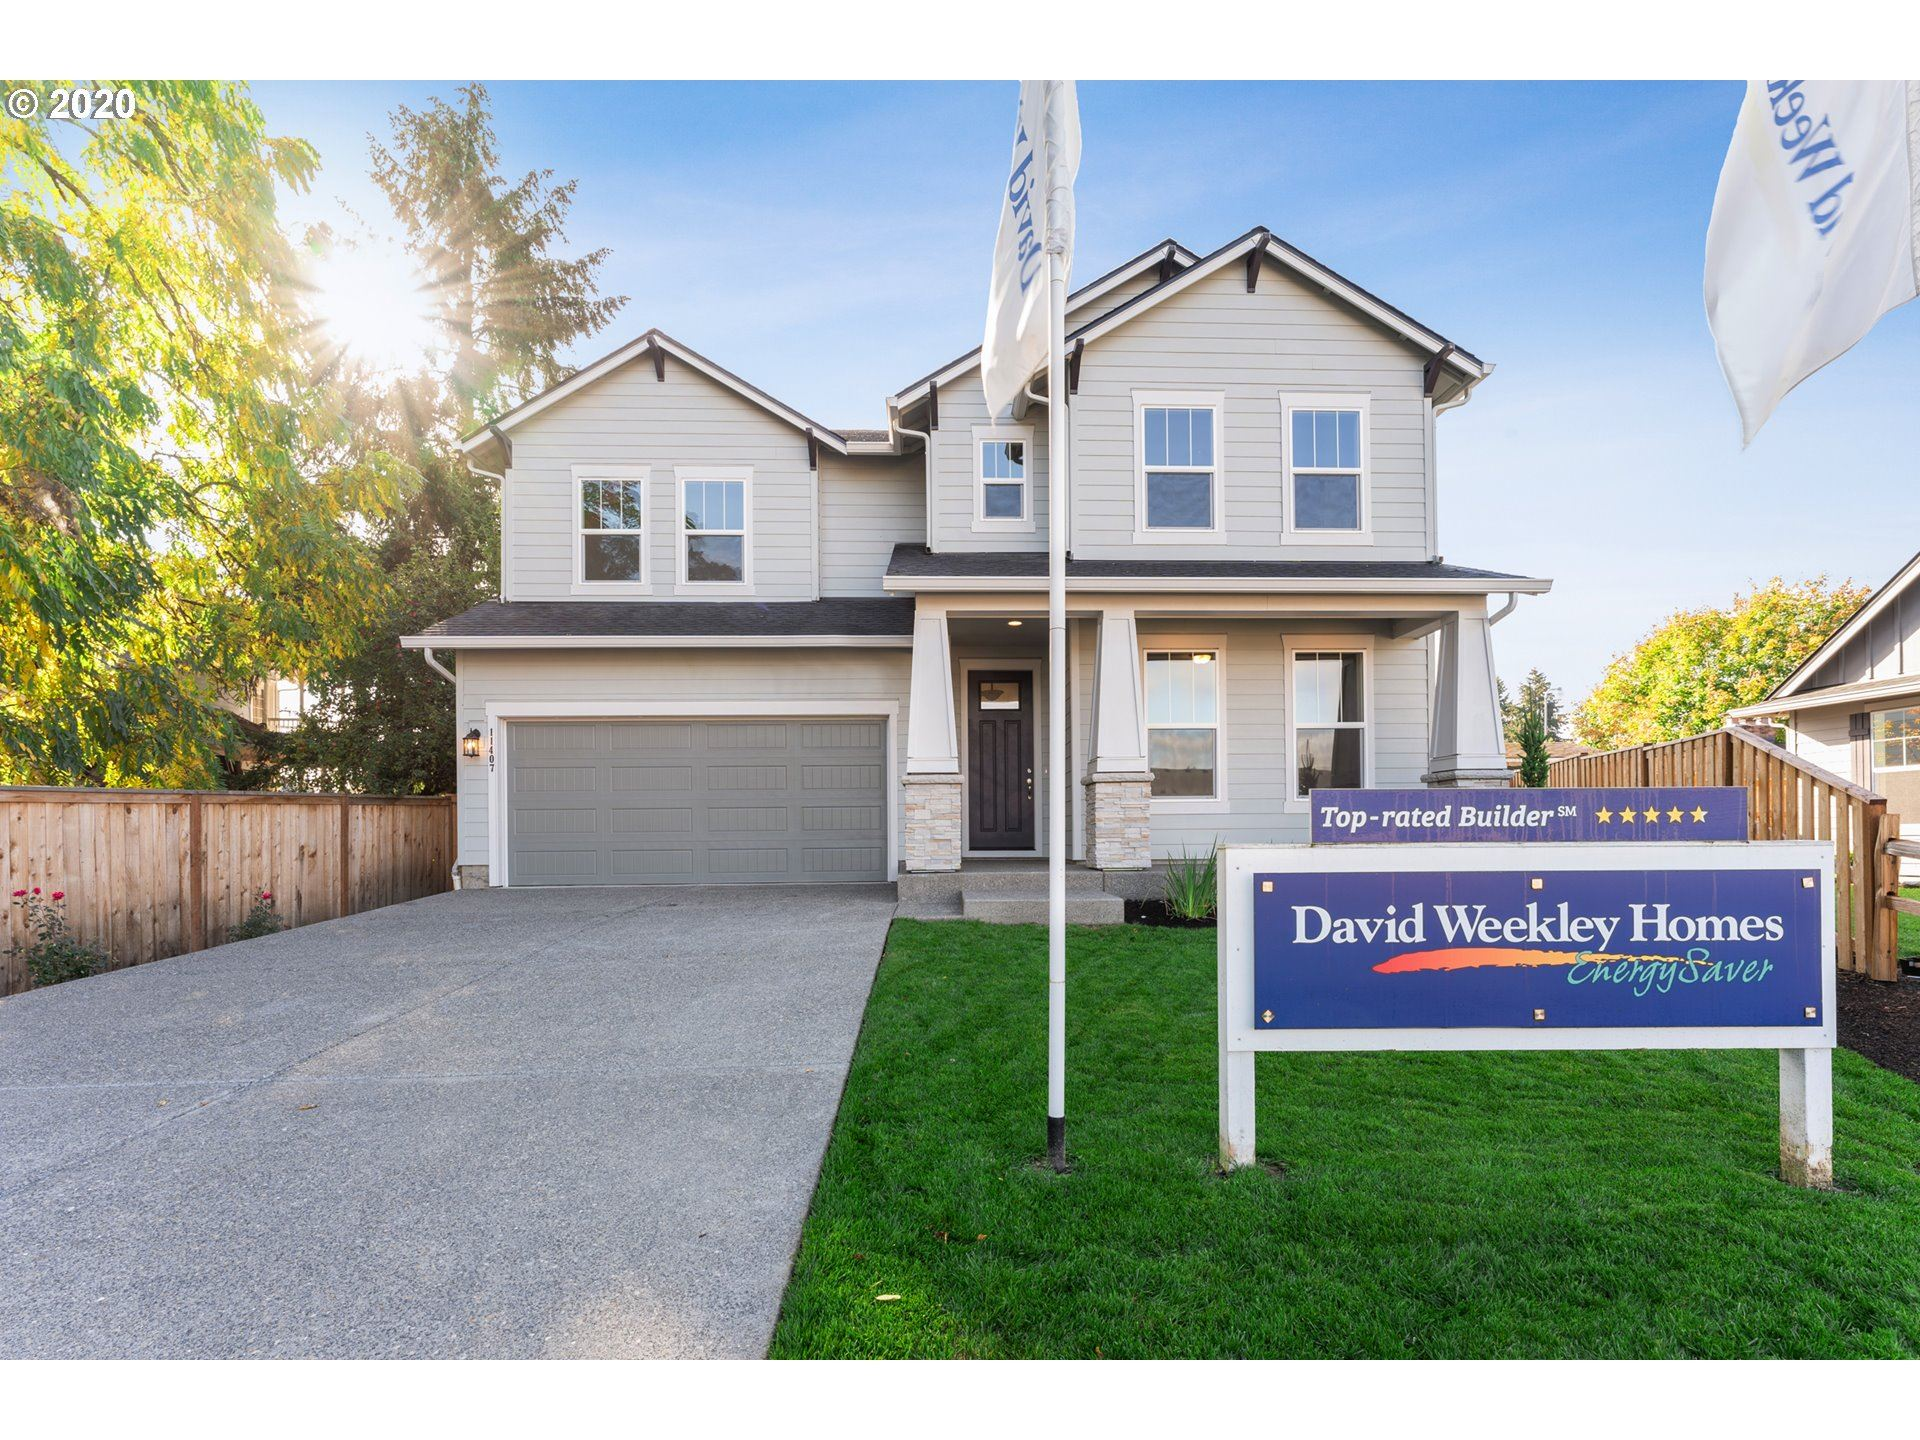 11407 NW 2ND CT, Vancouver, WA 98685 - MLS#: 20258192